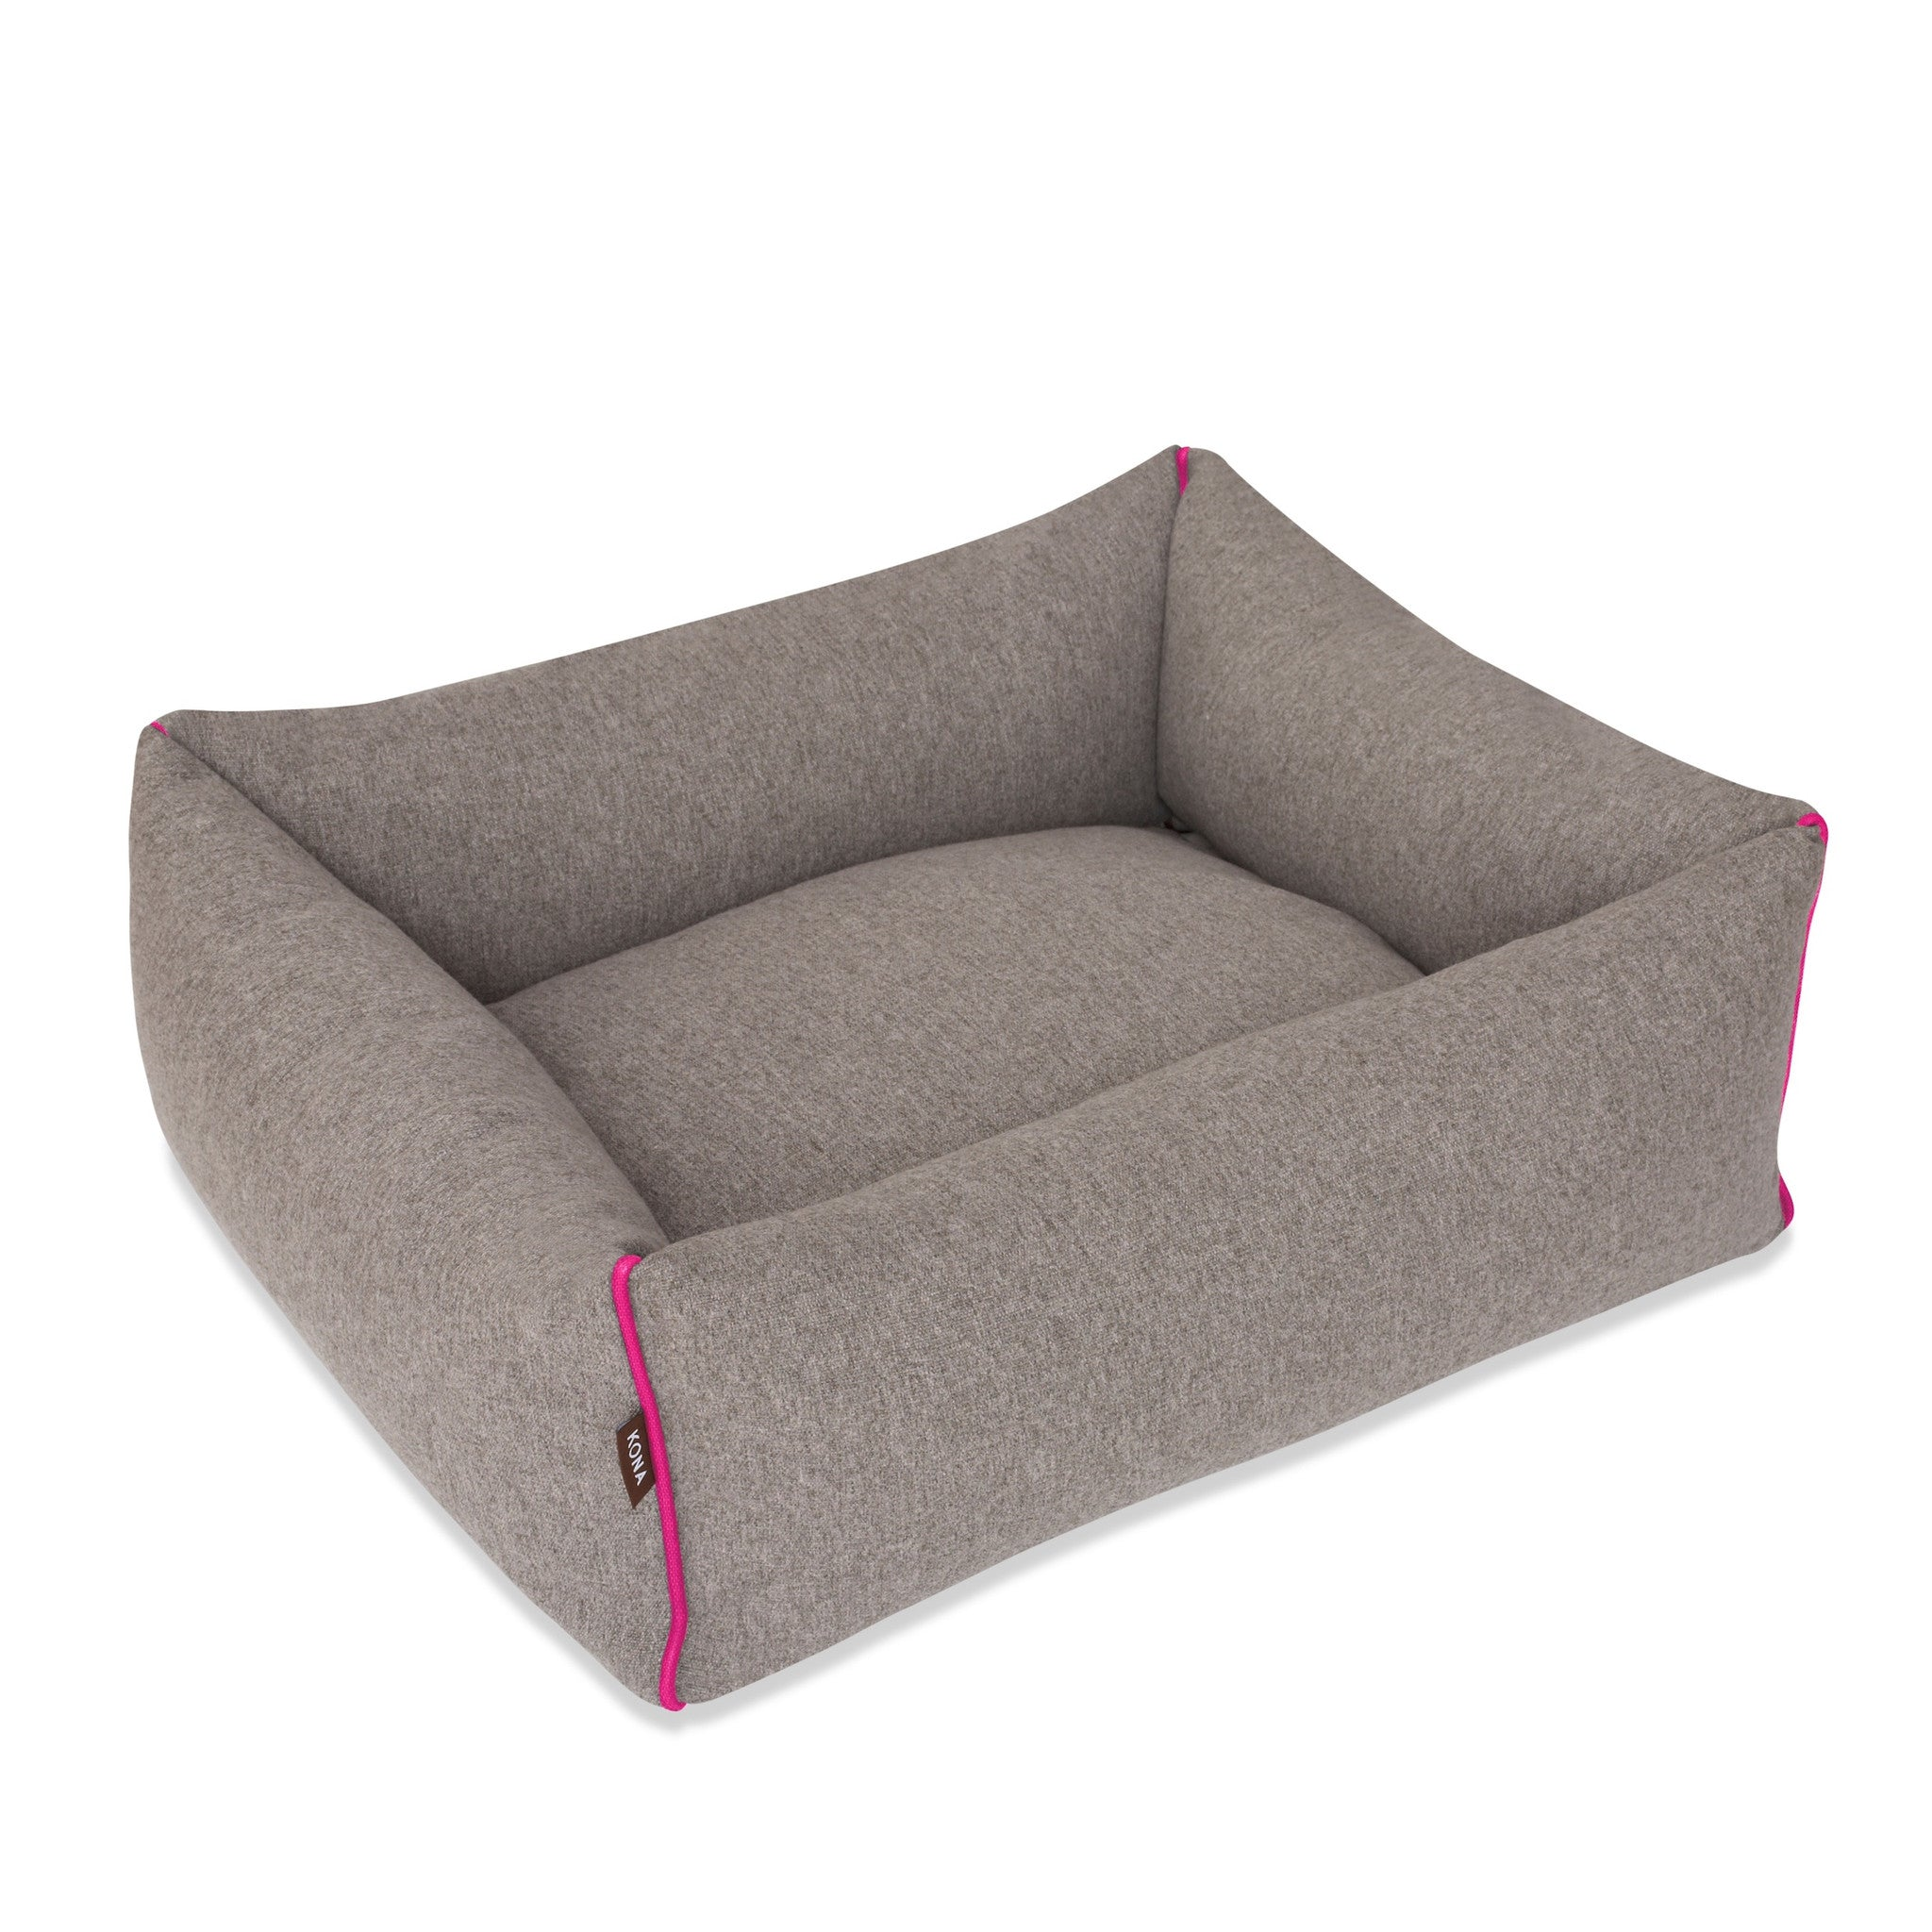 settee dog home bone why bed luxury a the wool stockwell blogs beds